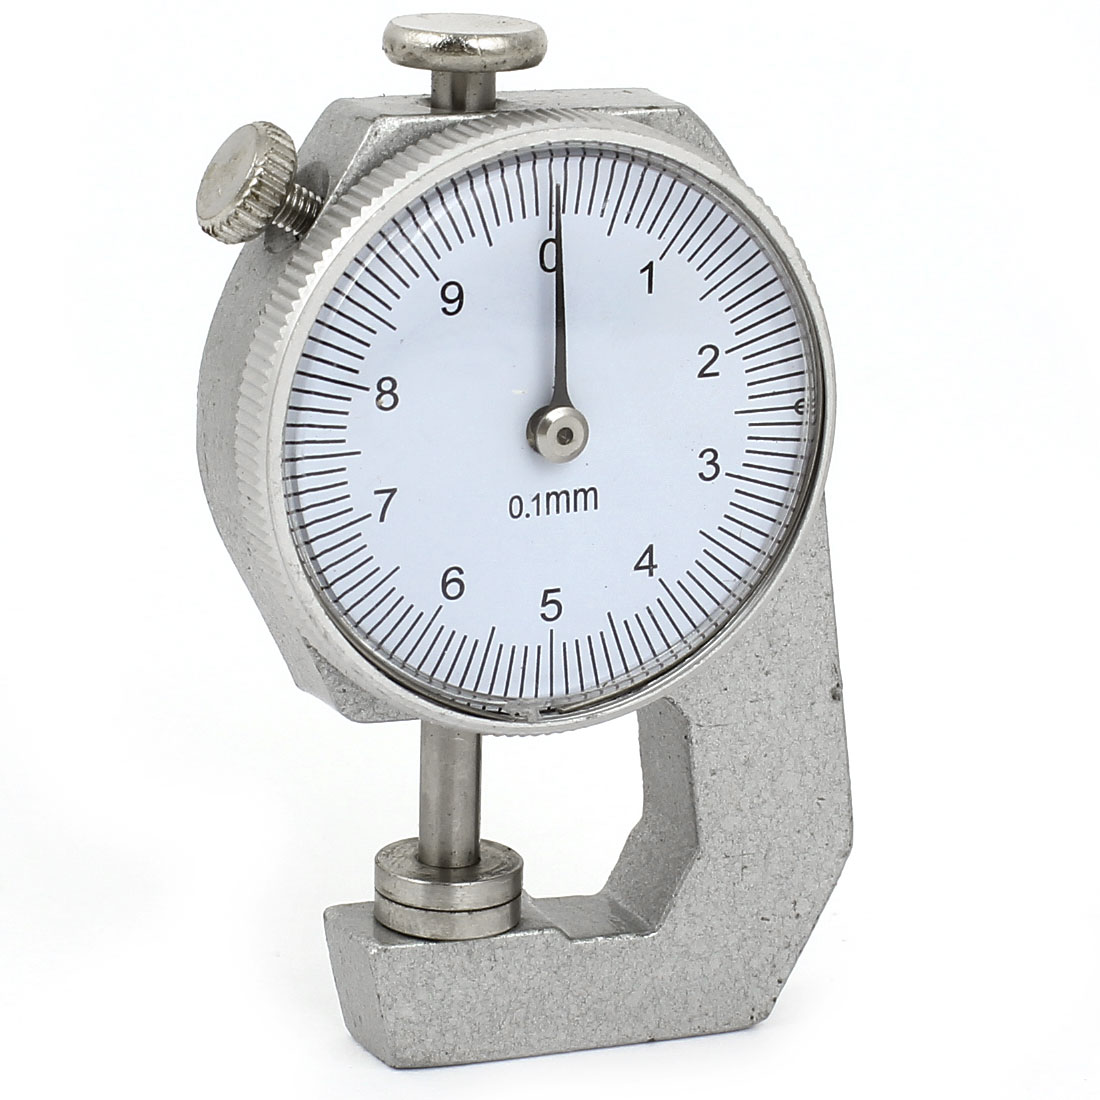 Round Shaped Dial 0-10mm 0.1mm Accuracy Thickness Gauge Measuring Hand Tool